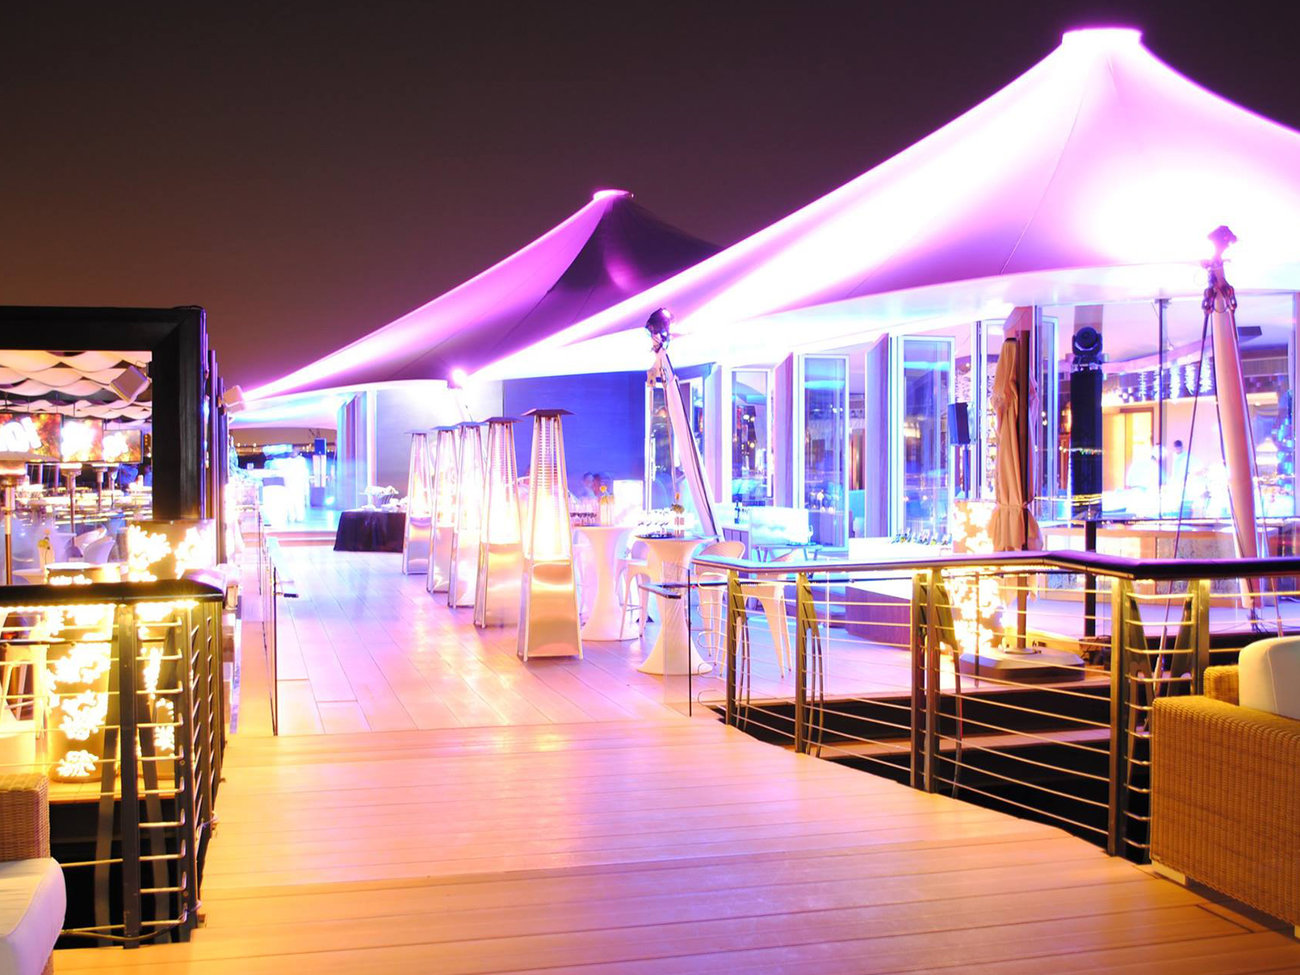 101 Dining Lounge and Bar Restaurant in Dubai